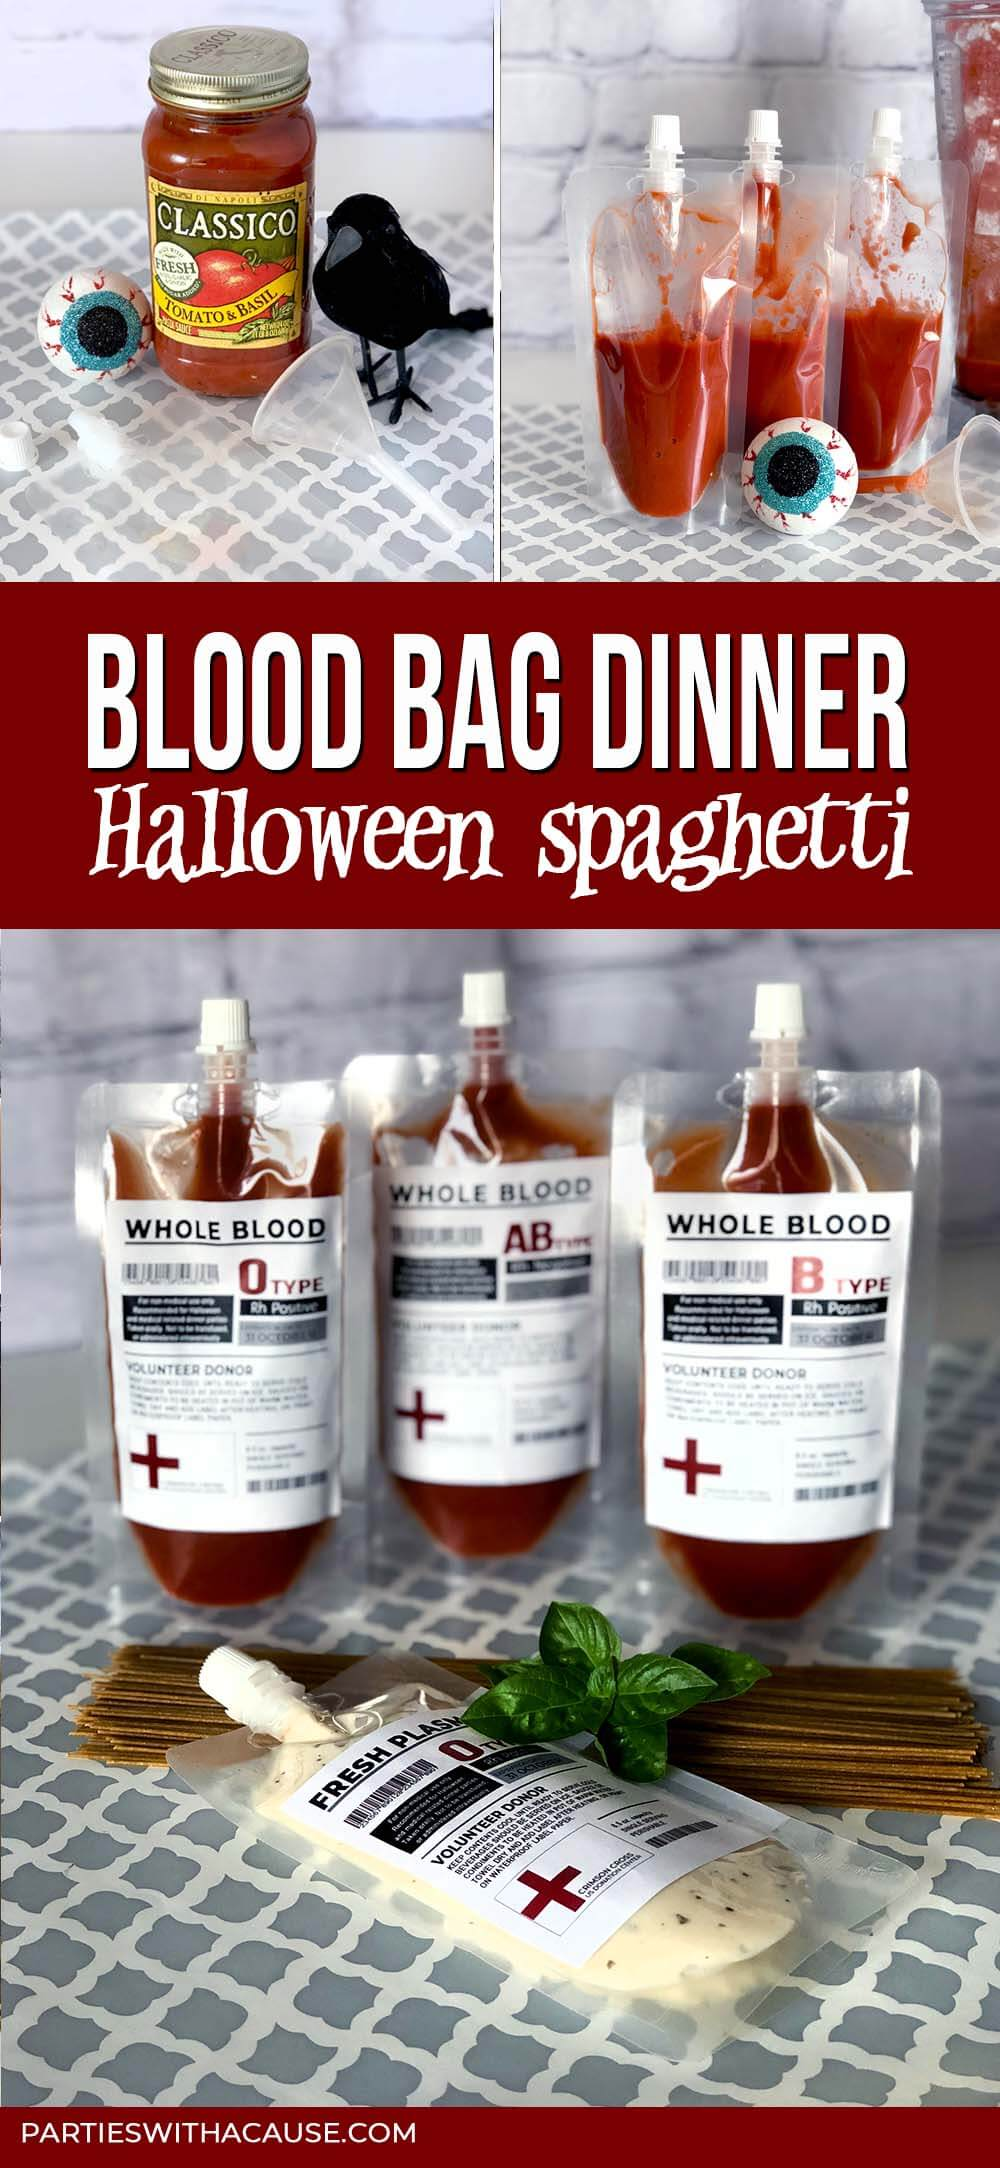 Blood bags for Halloween spaghetti dinner by Salt Lake Party Stylist